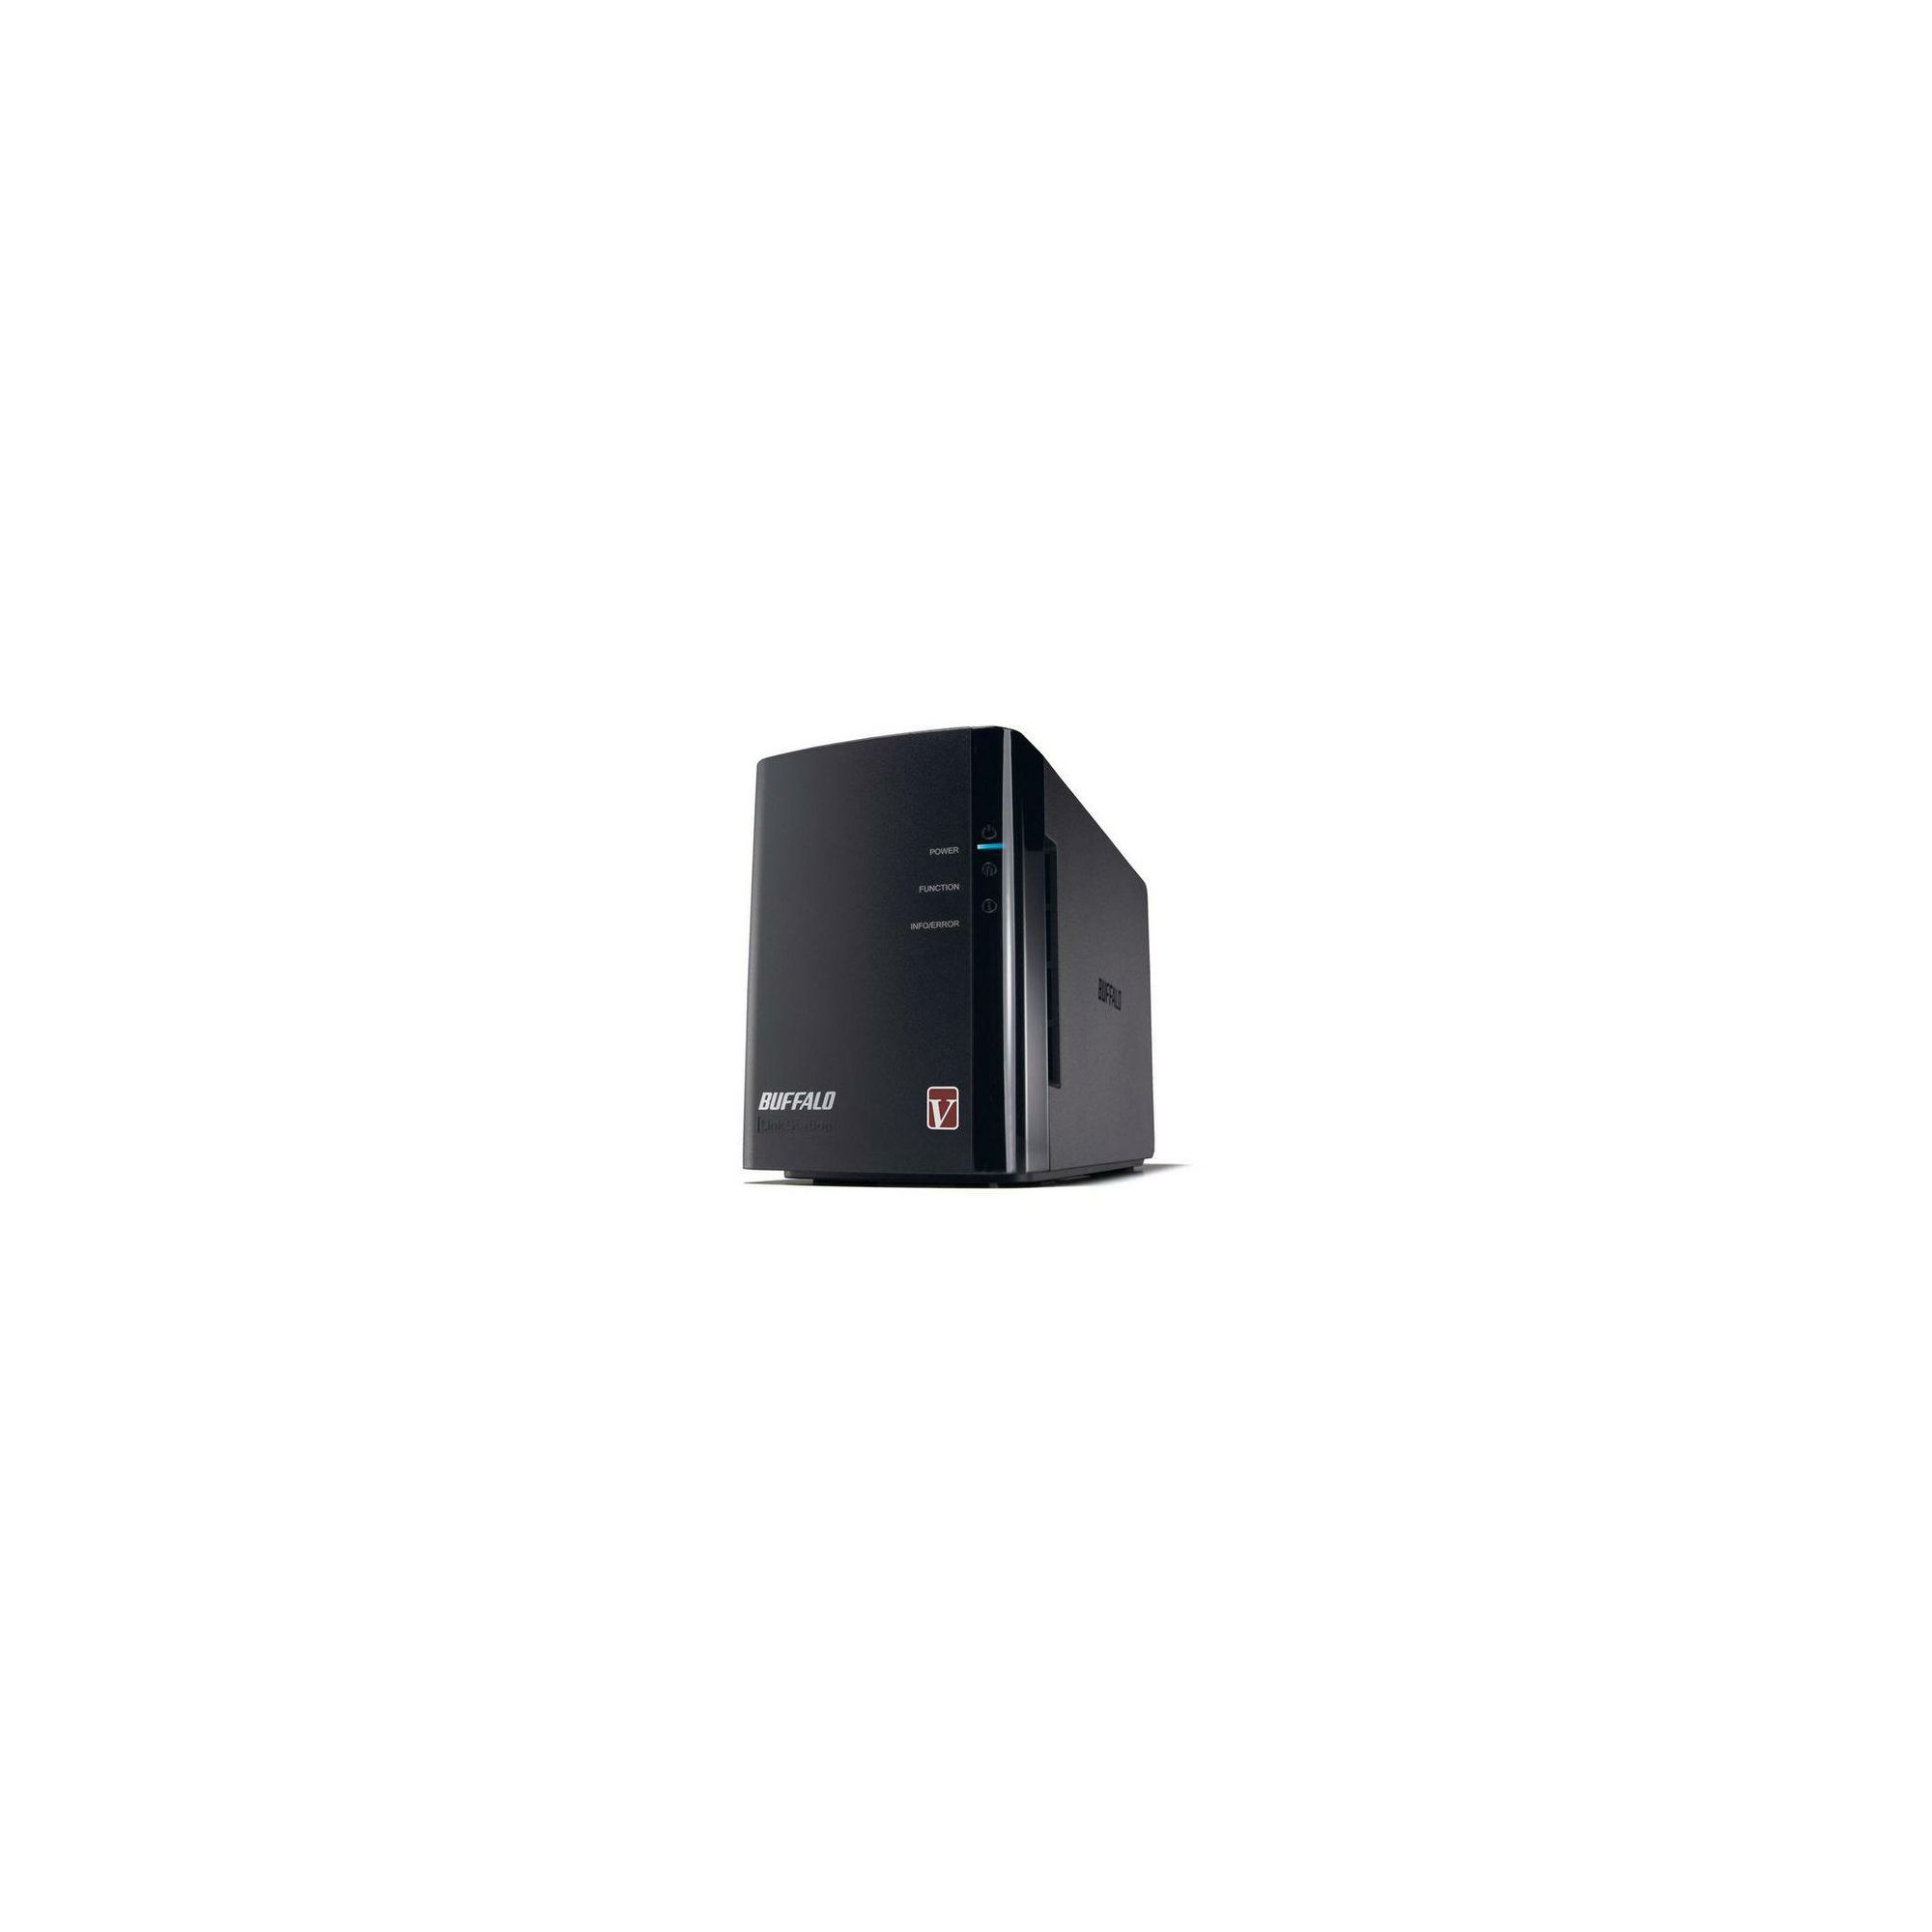 Buffalo LS-WV4.0TL/R1-EU LinkStation Pro Duo 4TB Network Attached Storage at Tesco Direct